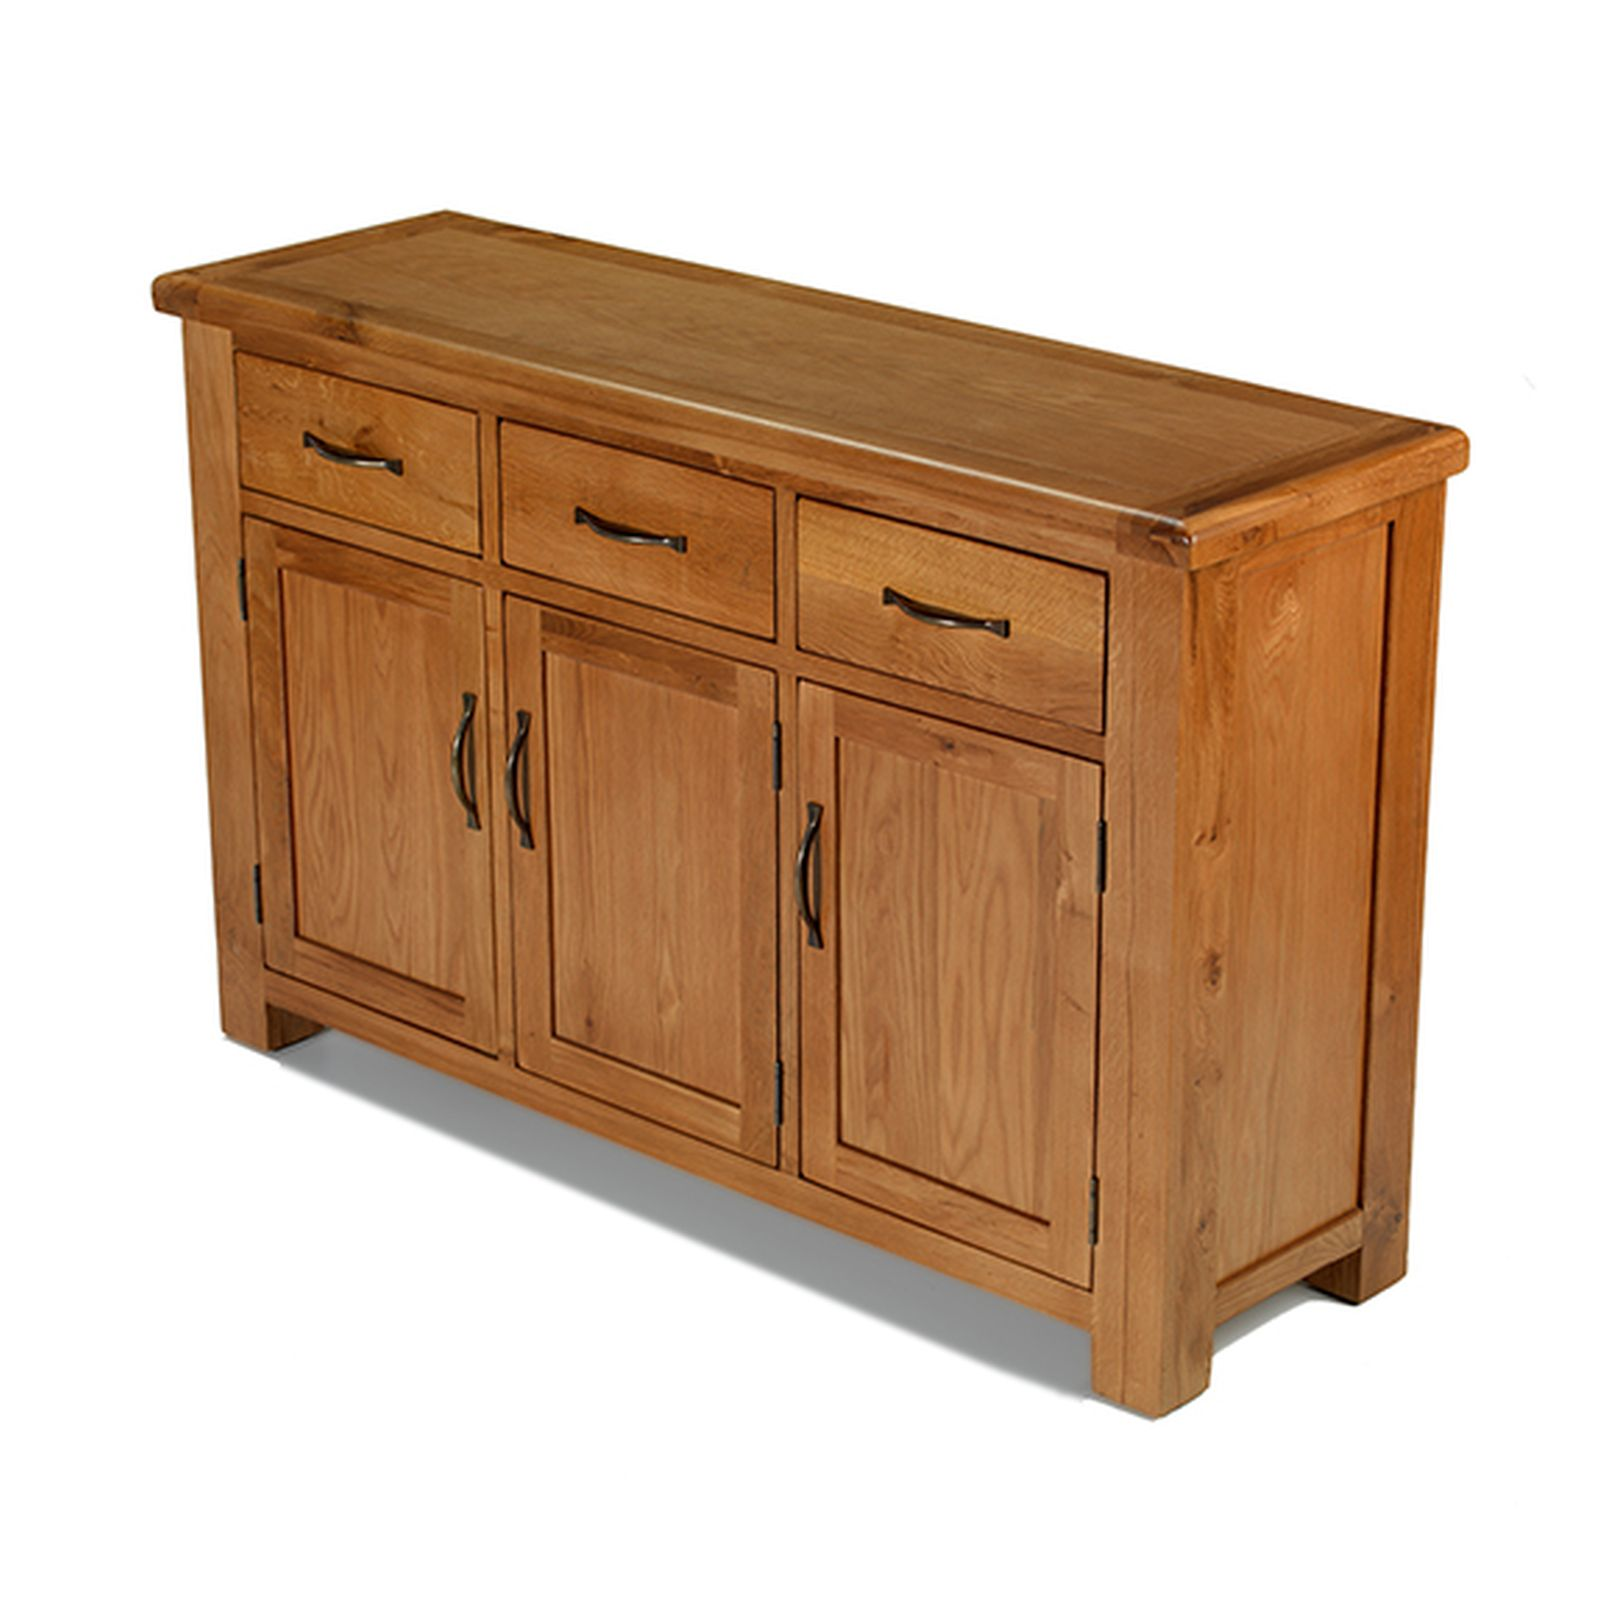 Rushden solid oak furniture large three door three drawer for Solid oak furniture